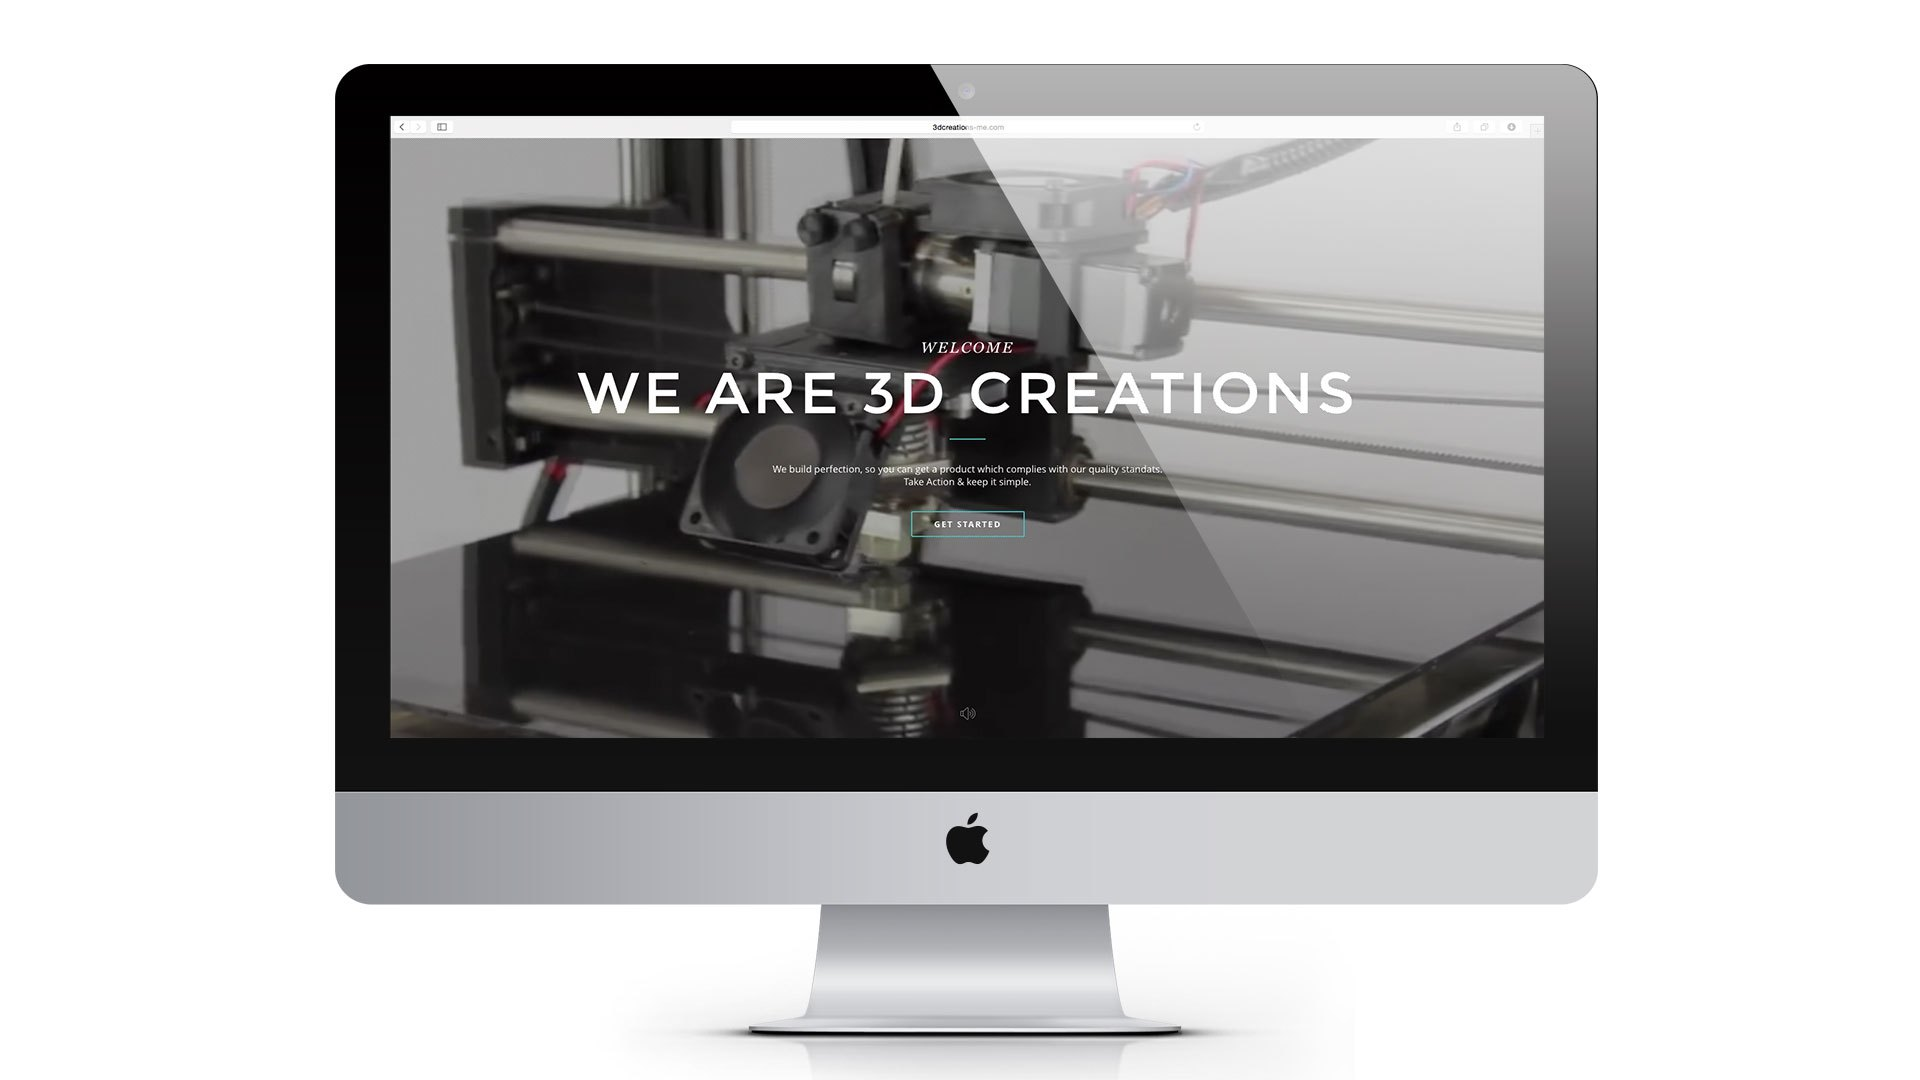 3d-creations-website-landing-page